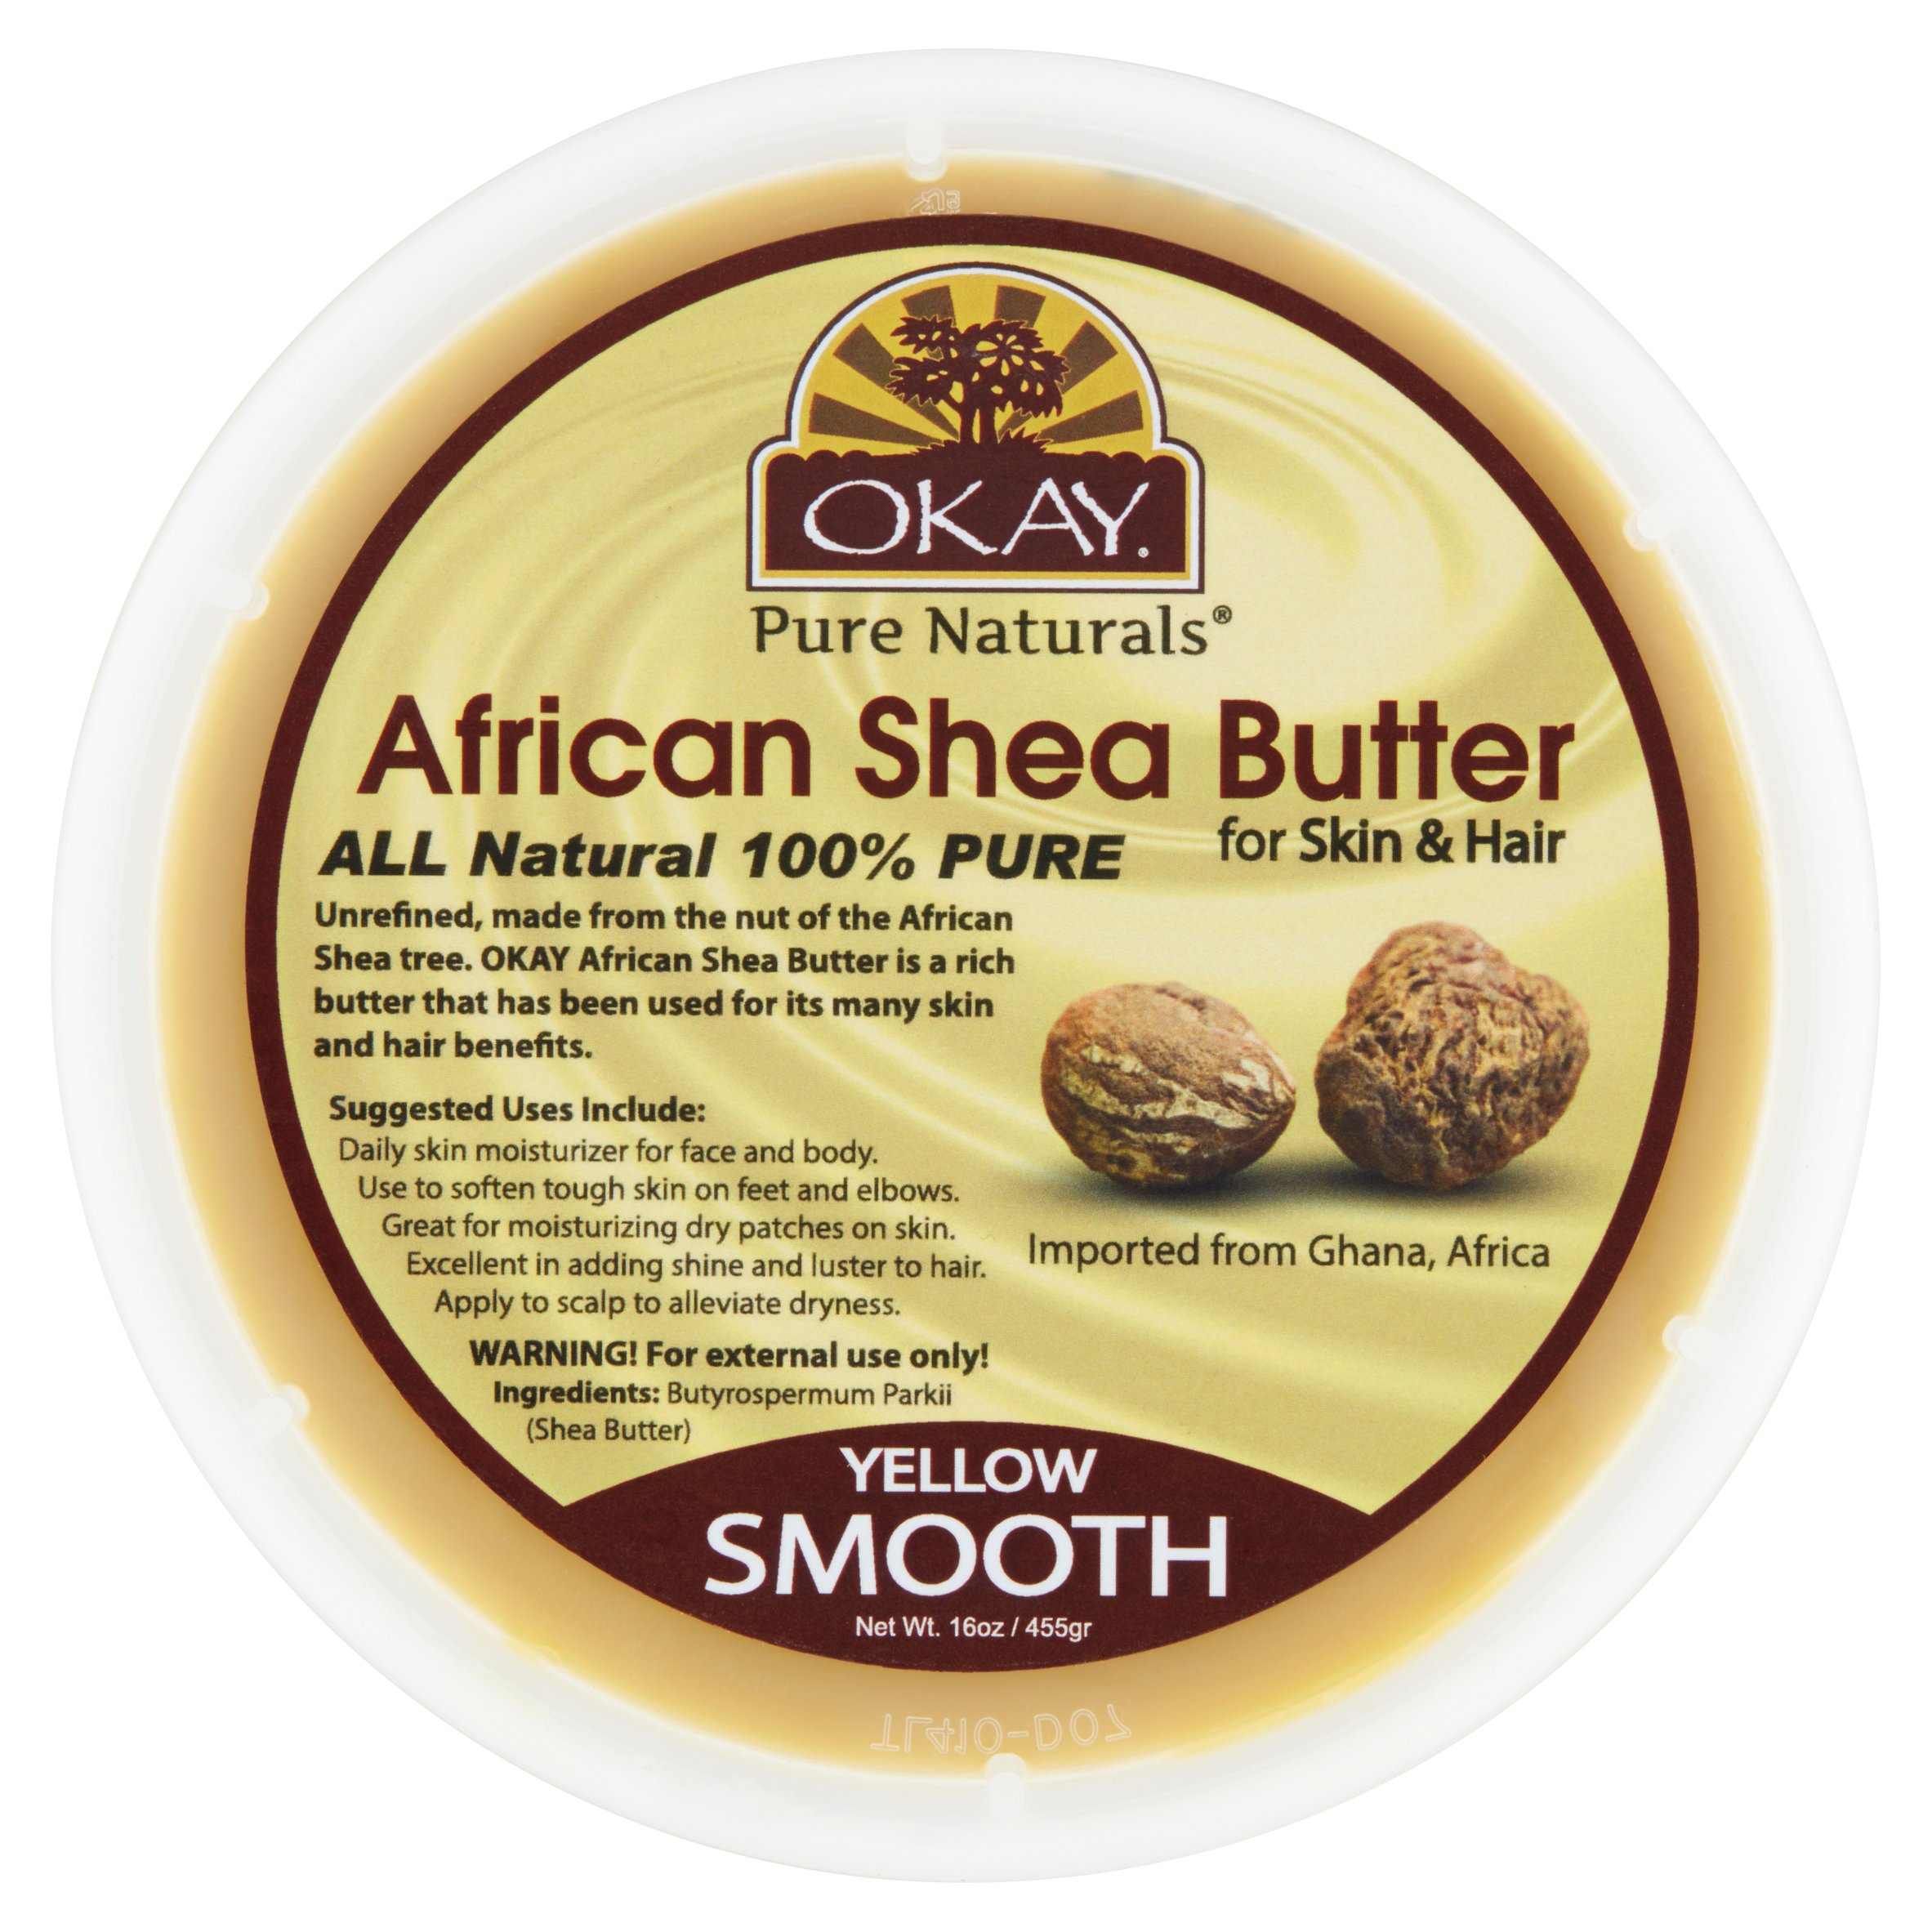 Okay Pure Naturals Yellow Smooth African Shea Butter, 16 Oz by Okay